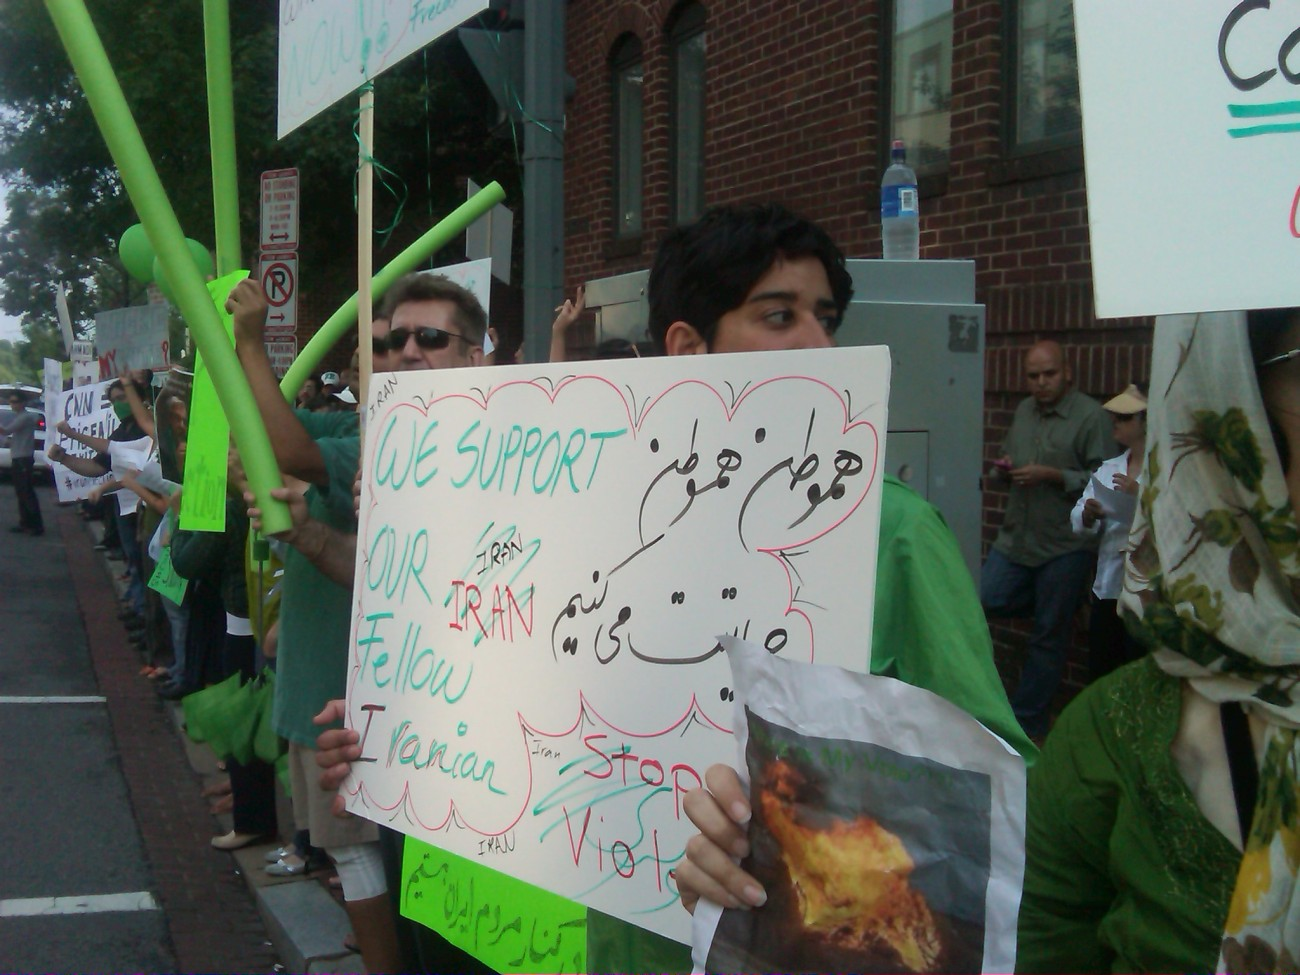 Nearly 1,000 Iranians ask for democracy in fron of Iranian interests section in Washington, DC